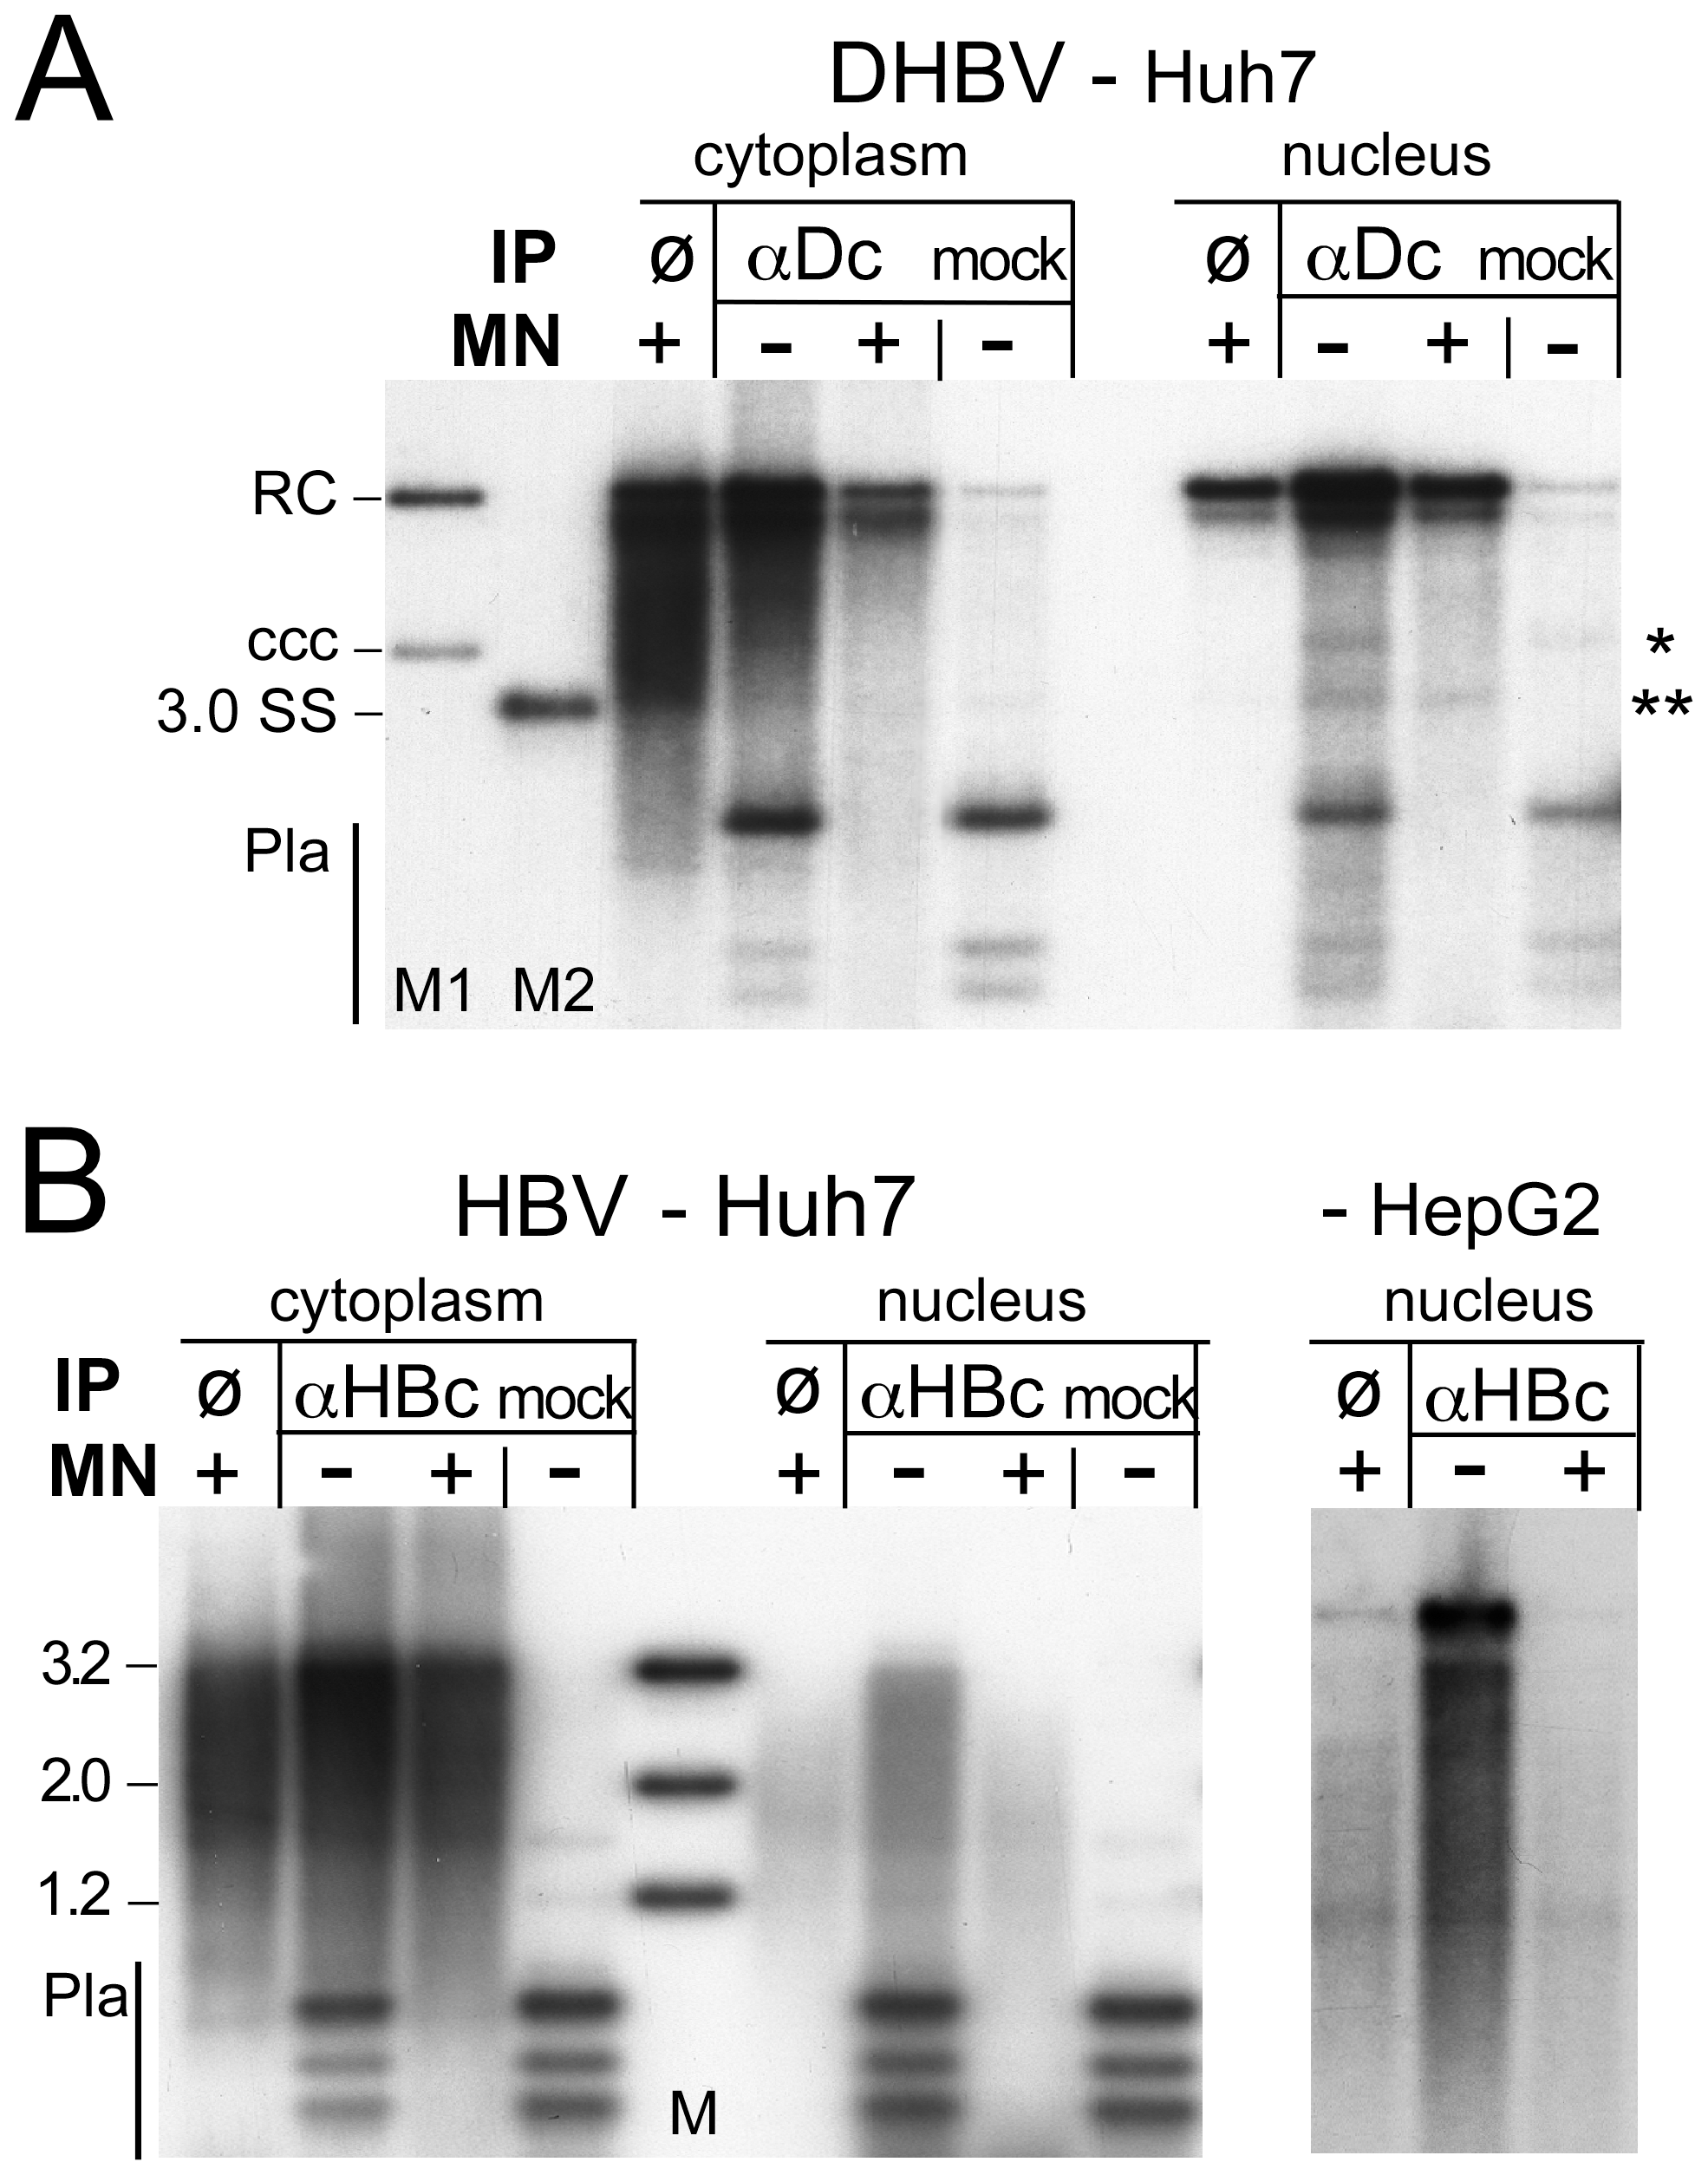 Core protein association of nuclear DHBV and HBV DNA.